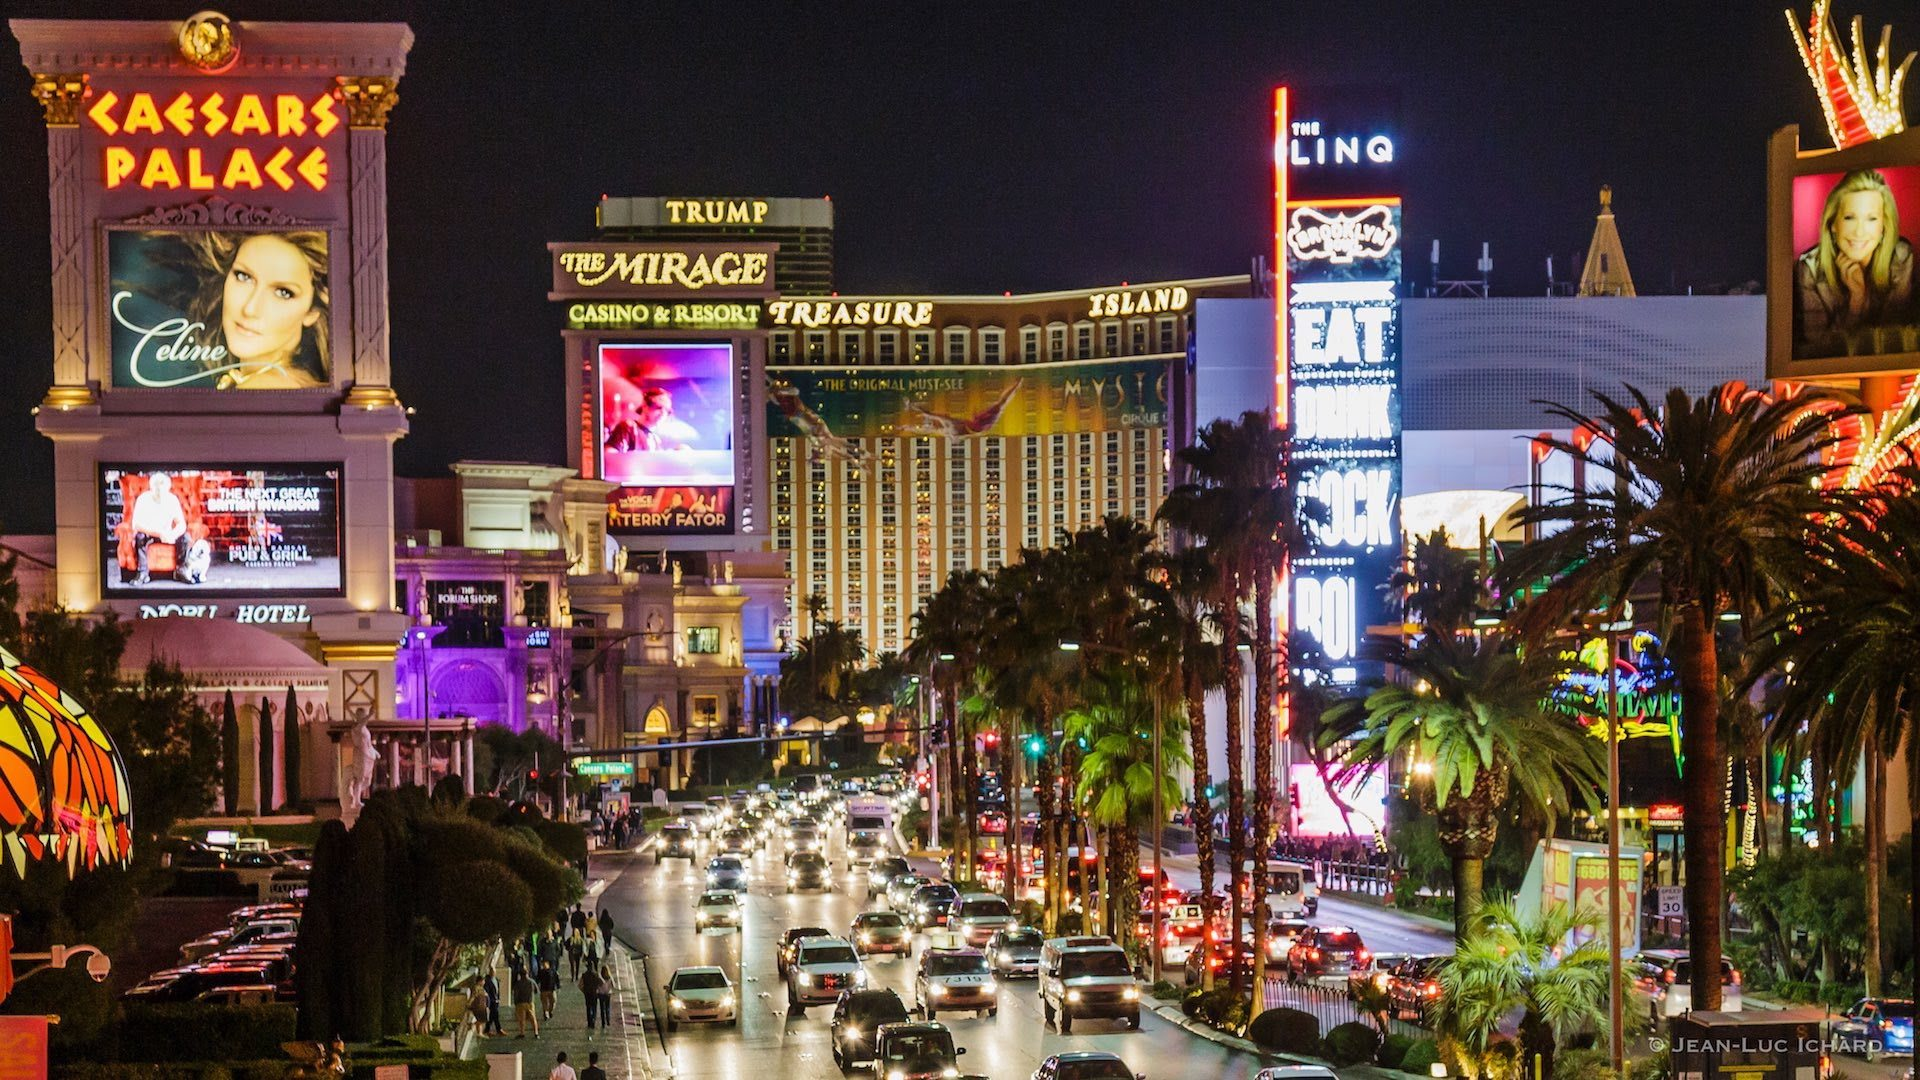 What Was The First Casino Built In Las Vegas